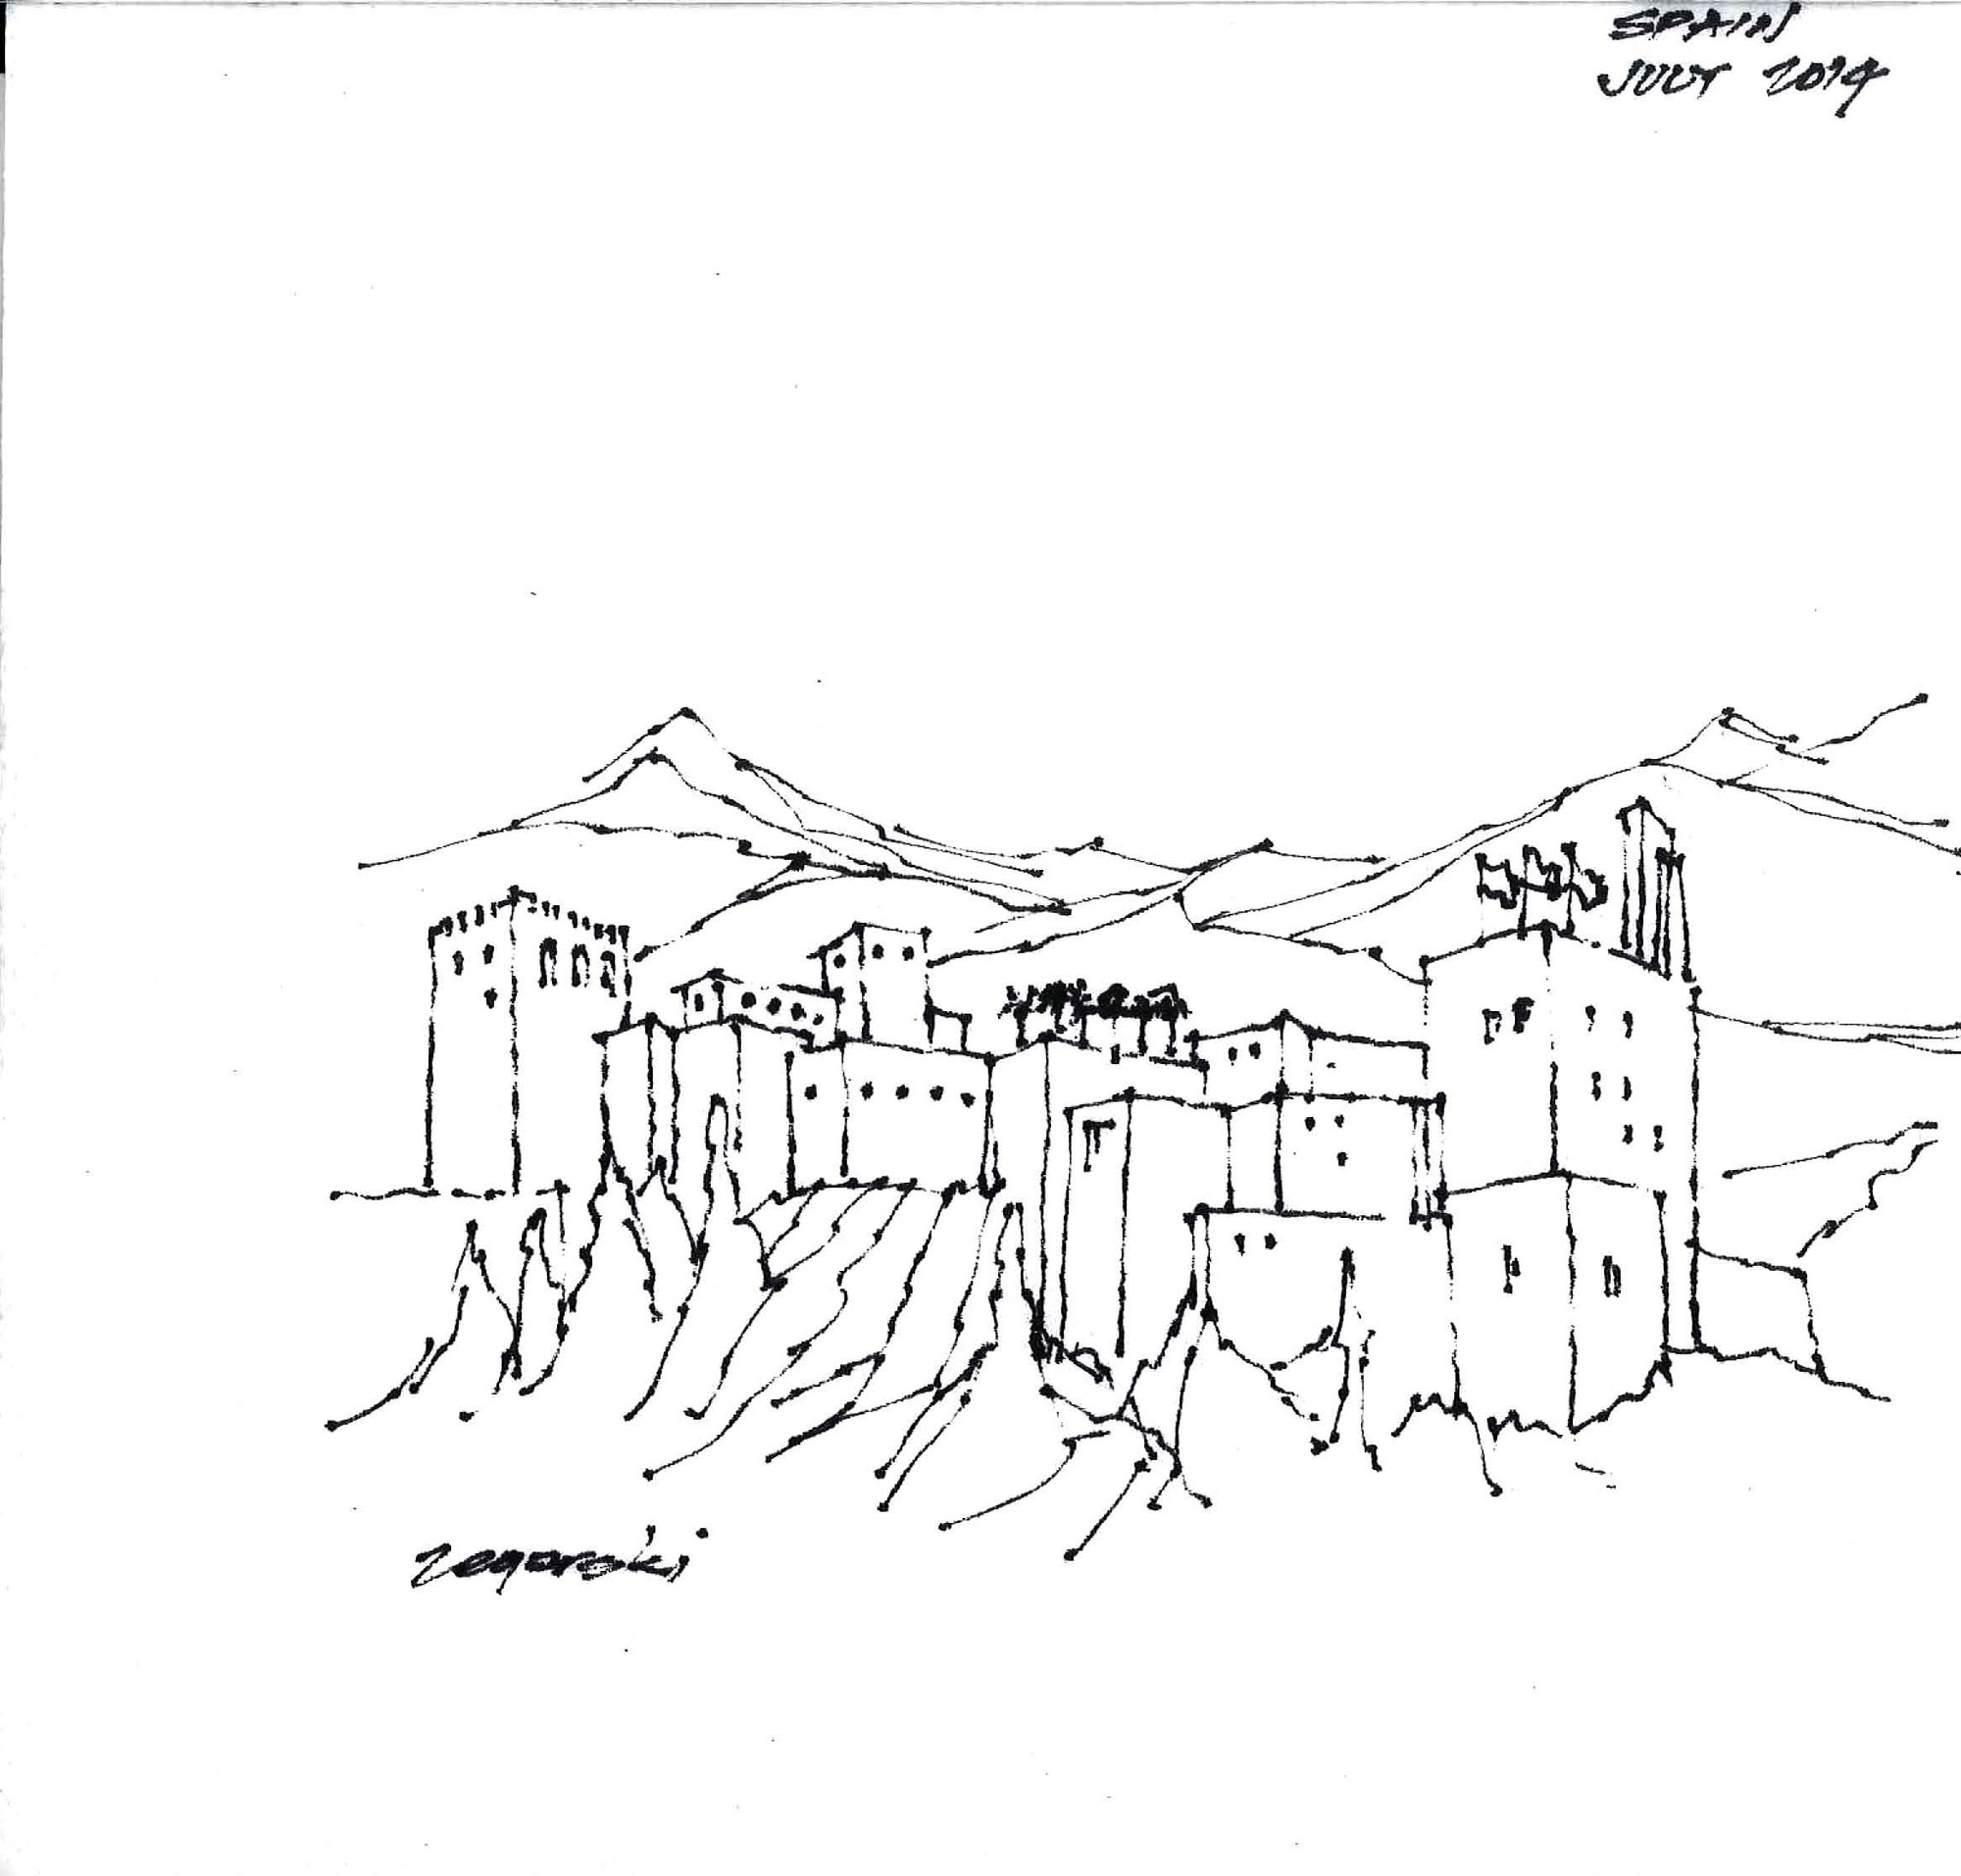 17 Napkin Sketches By Famous Architects